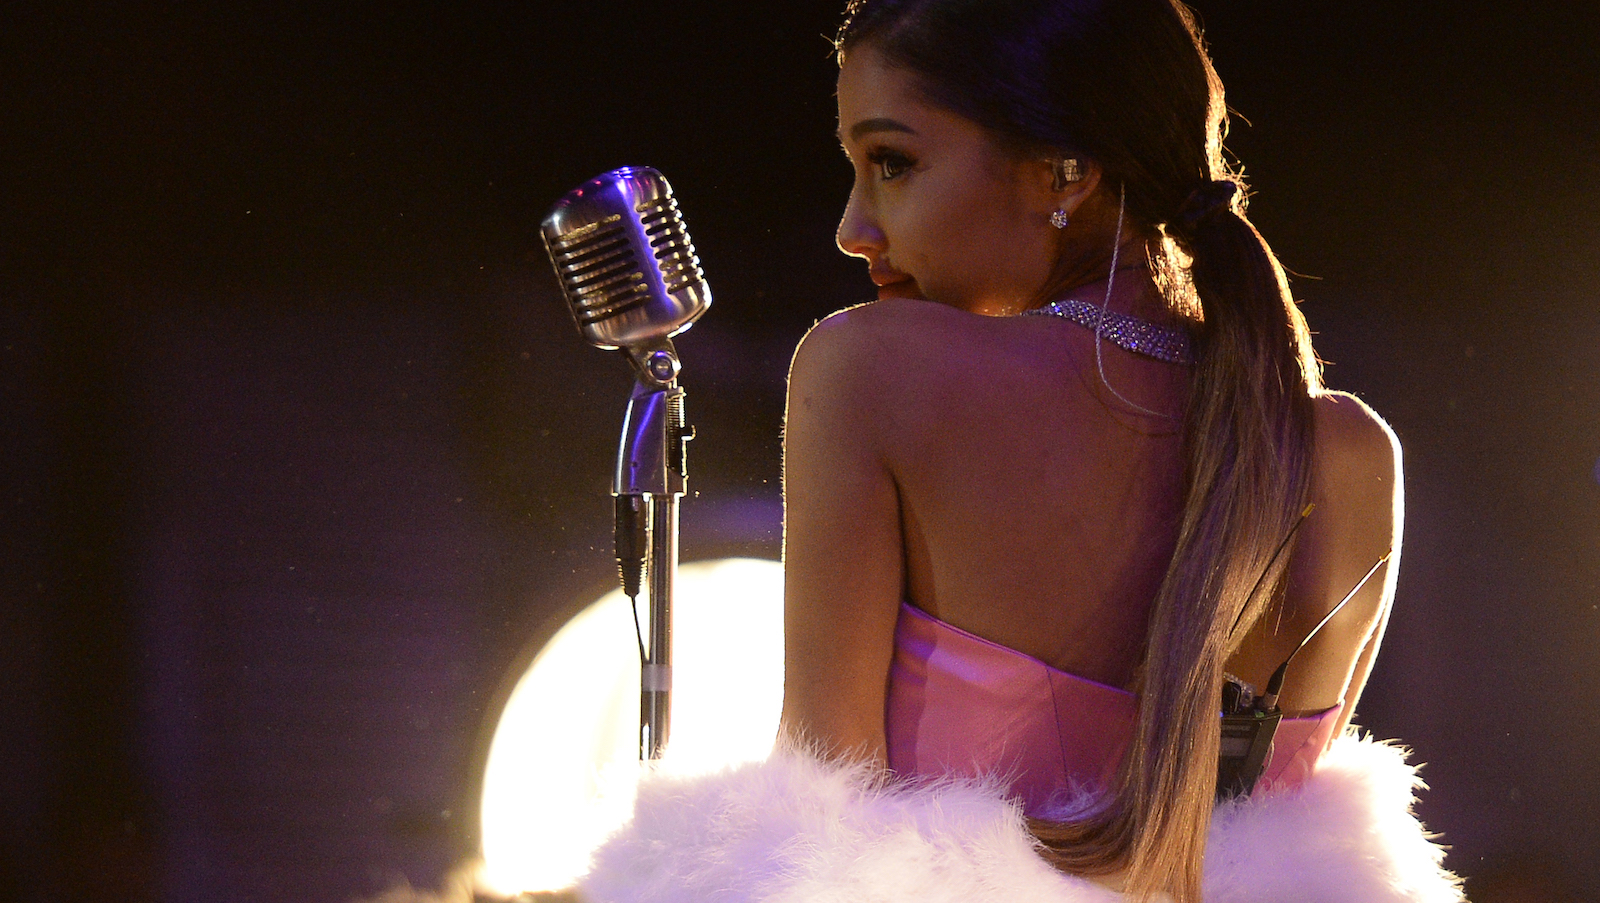 Singer Ariana Grande performs in this pool photo during the 2016 MTV Movie Awards in Los Angeles April 9, 2016 and released April 10, 2016.  REUTERS/Kevork Djansezian/Pool    - RTX29D99